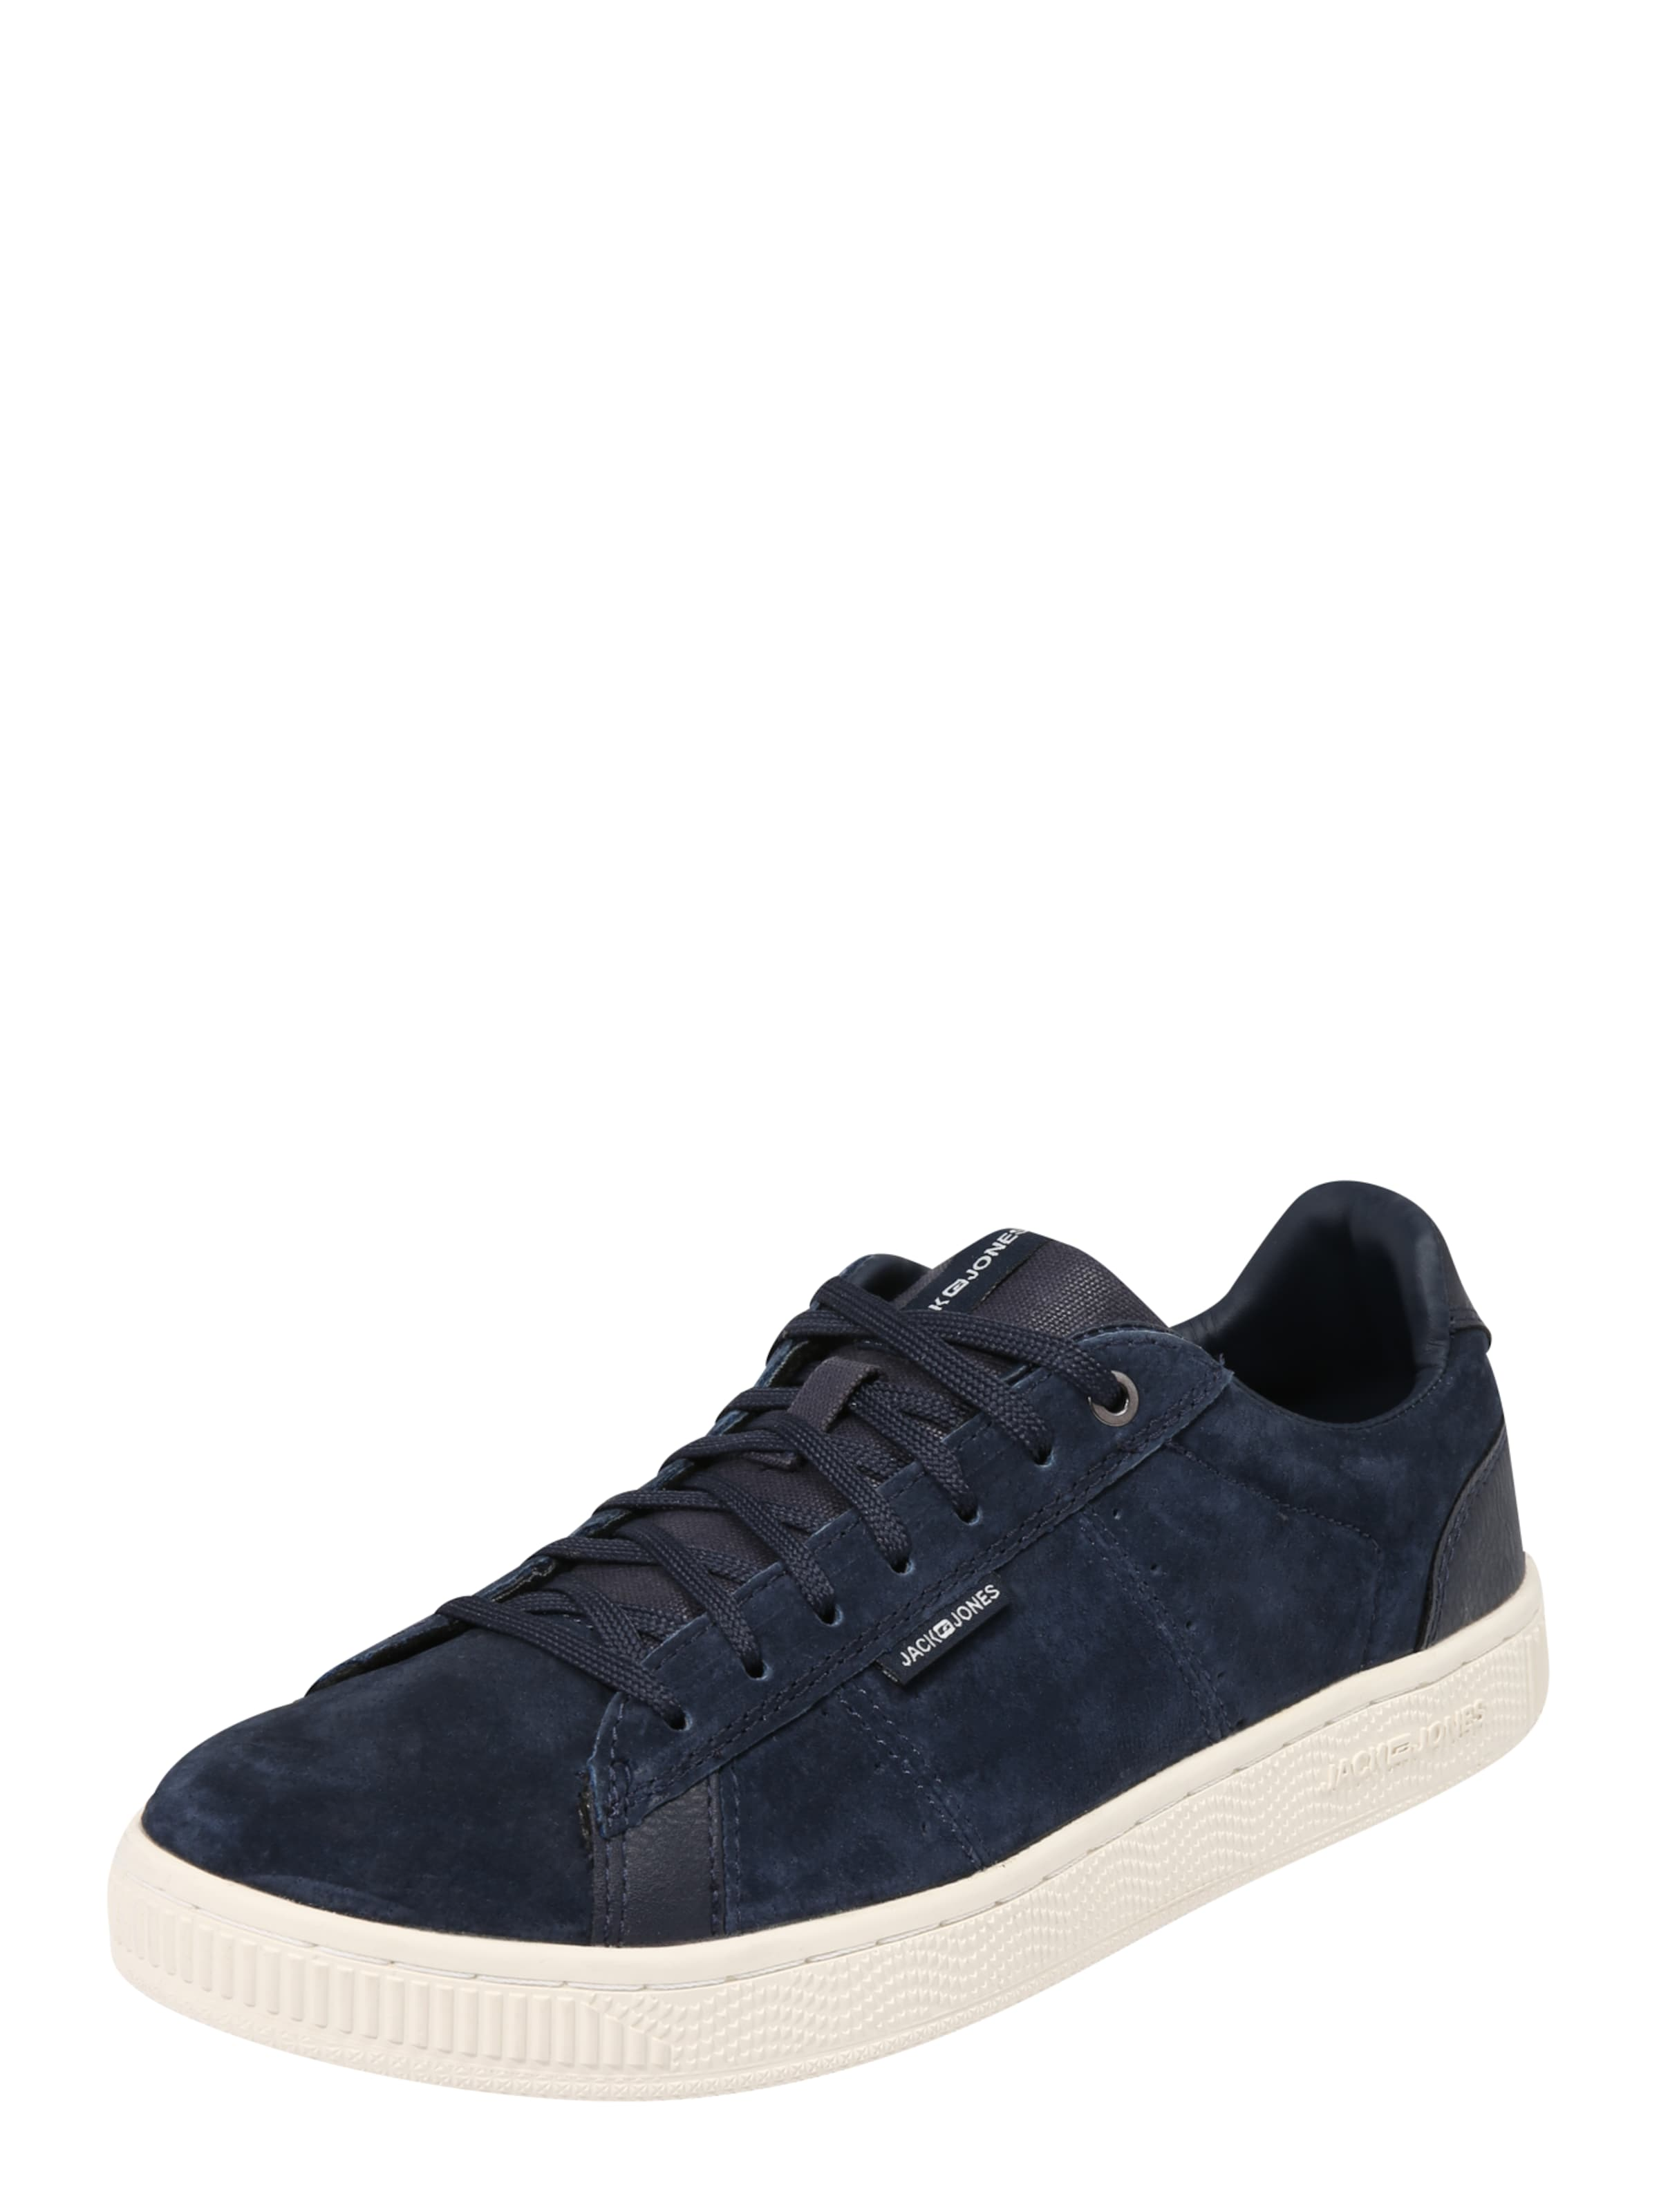 Jackamp; In Jones Sneaker NavyWeiß 'wolly' Y6f7gvbIy